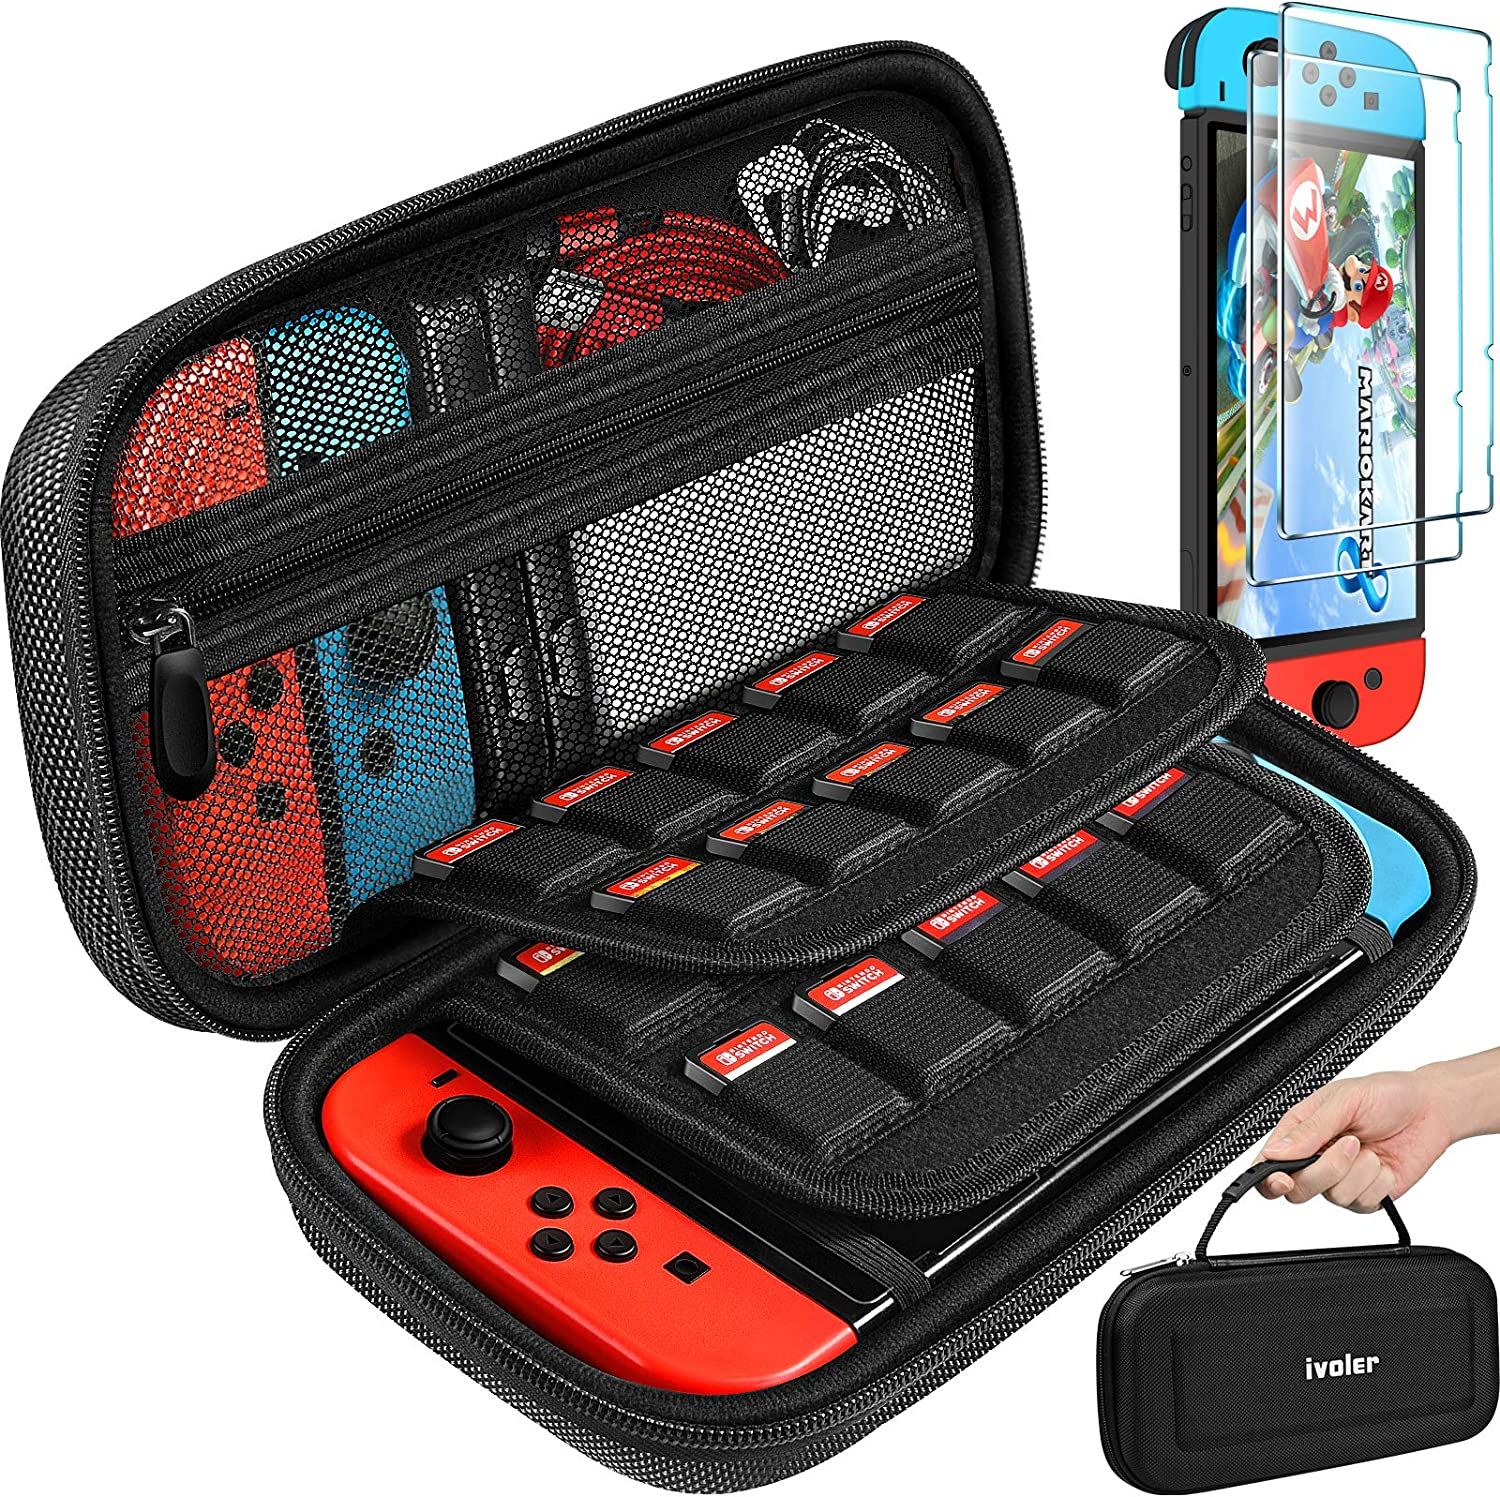 Carrying Case for Nintendo Switch with 2 Pack Screen Protector, iVoler Protective Portable Hard Shell Pouch Carrying Travel Game Bag for Nintendo Switch Console Accessories Holds 20 Game Cartridge